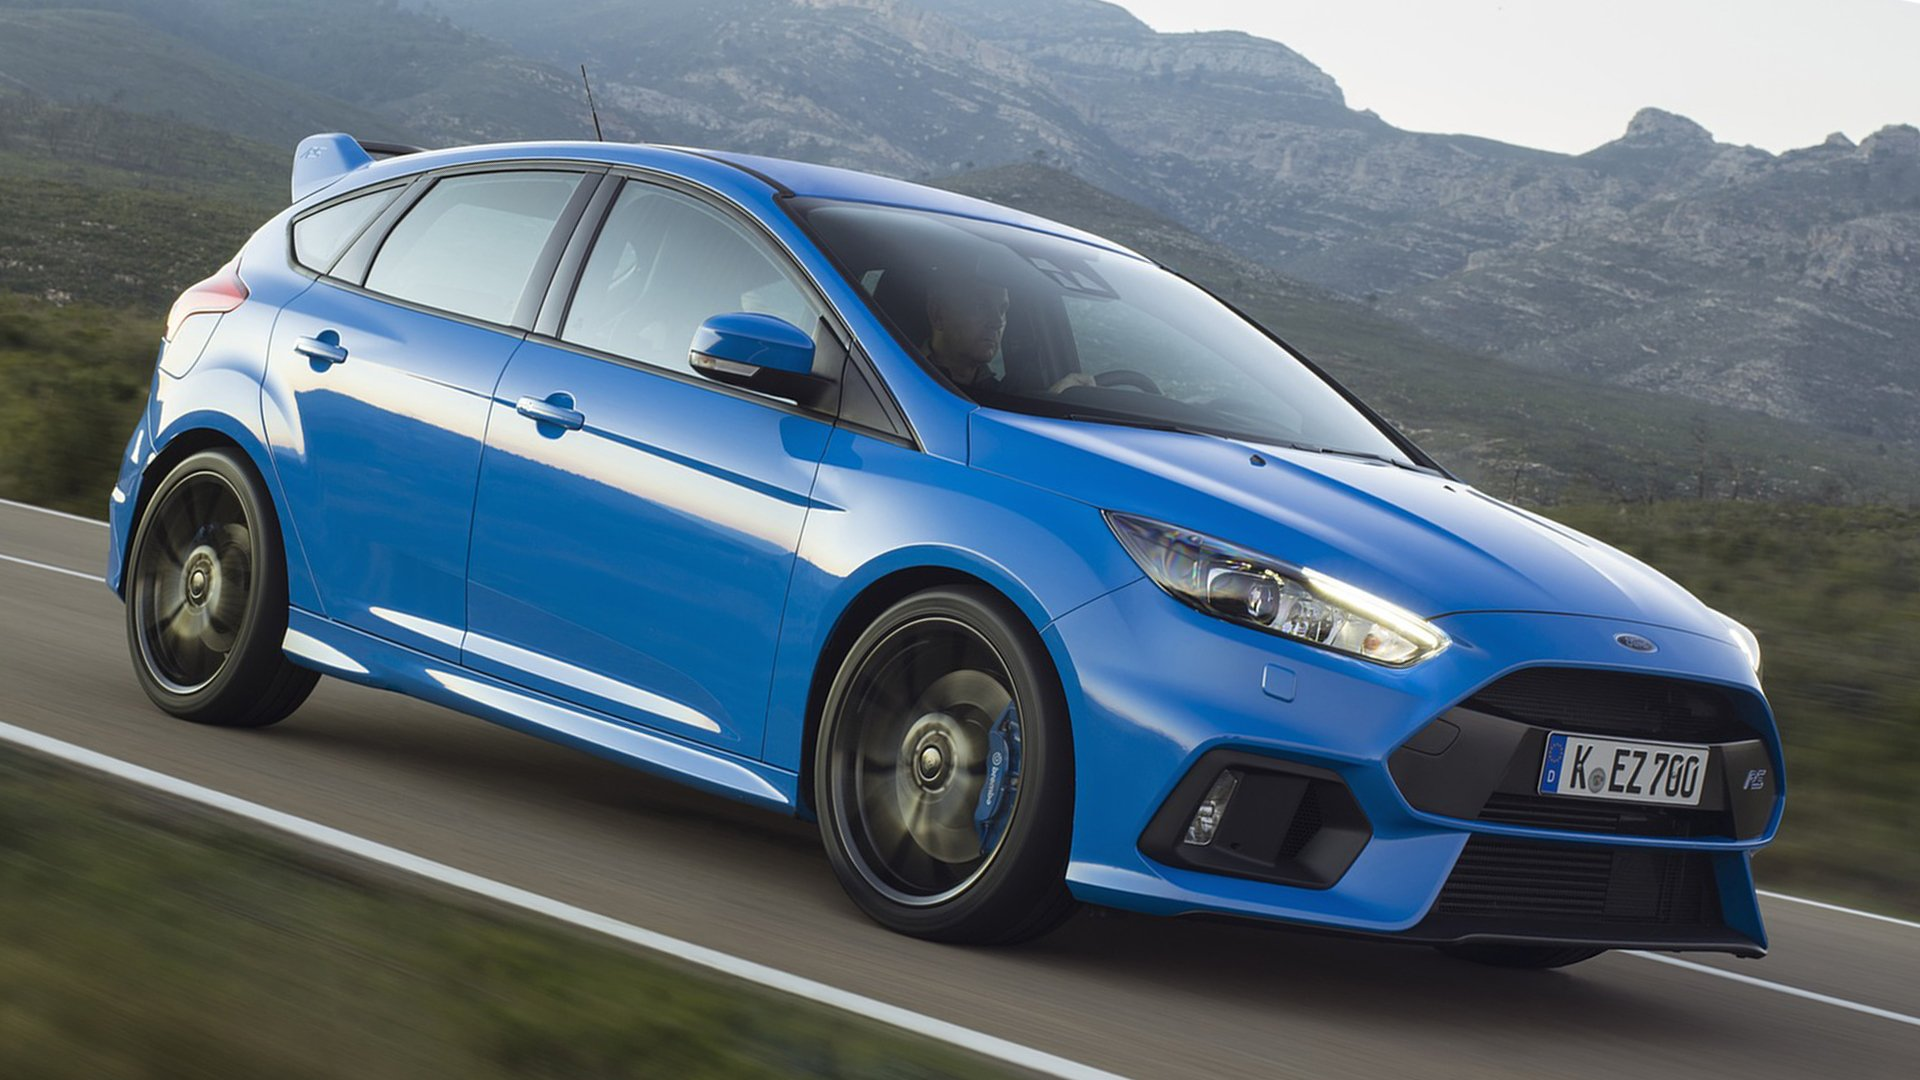 Images Ford Focus 2019 HD